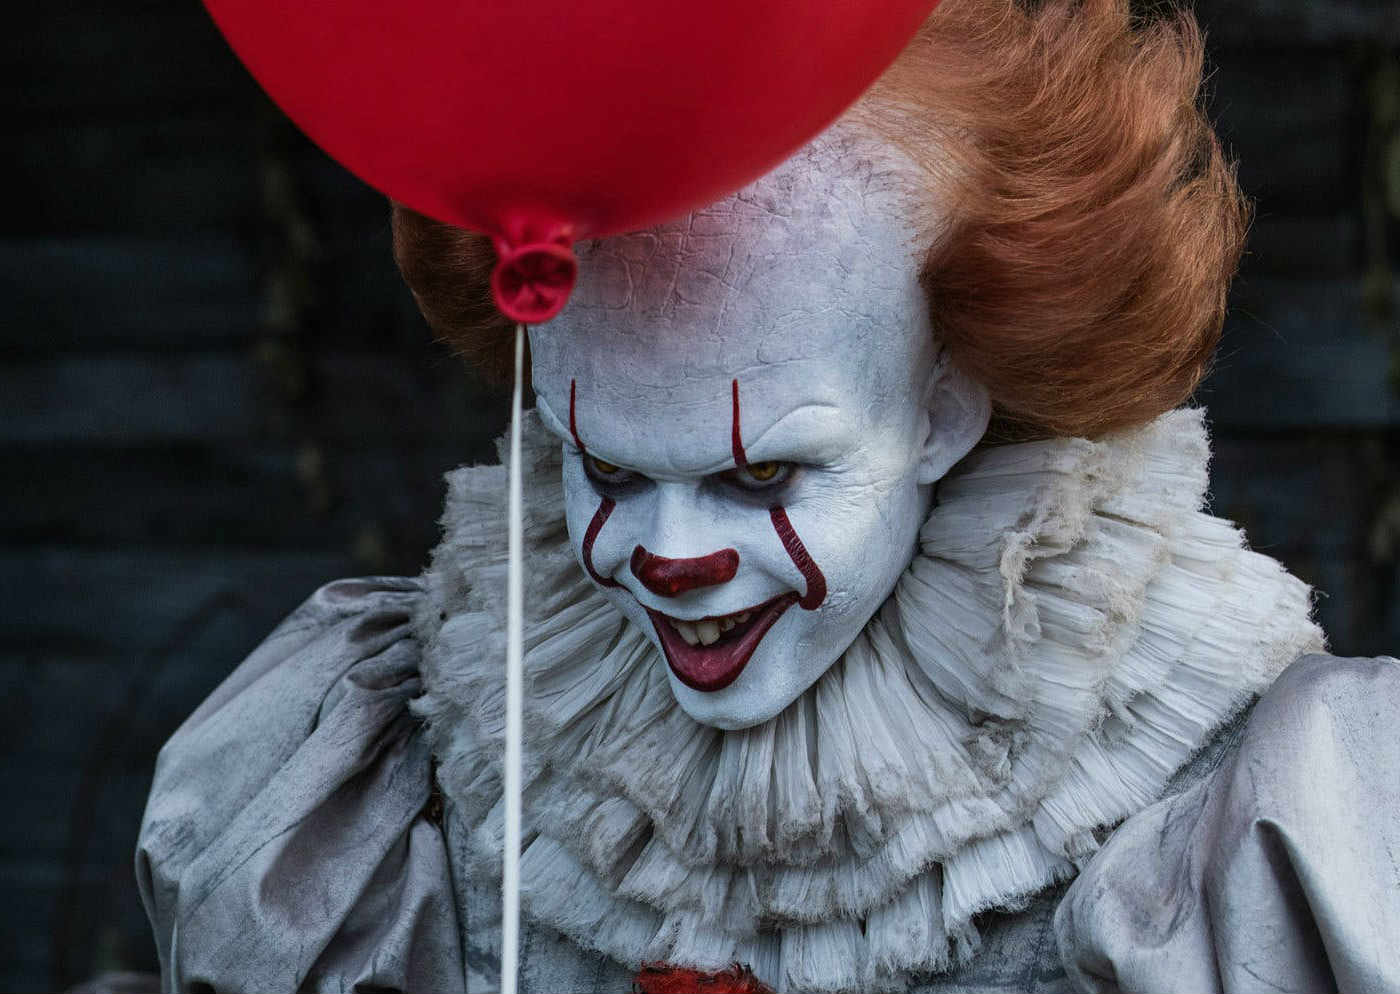 It: Chapter 2 Cast and Crew Reveal Details About the Sequel